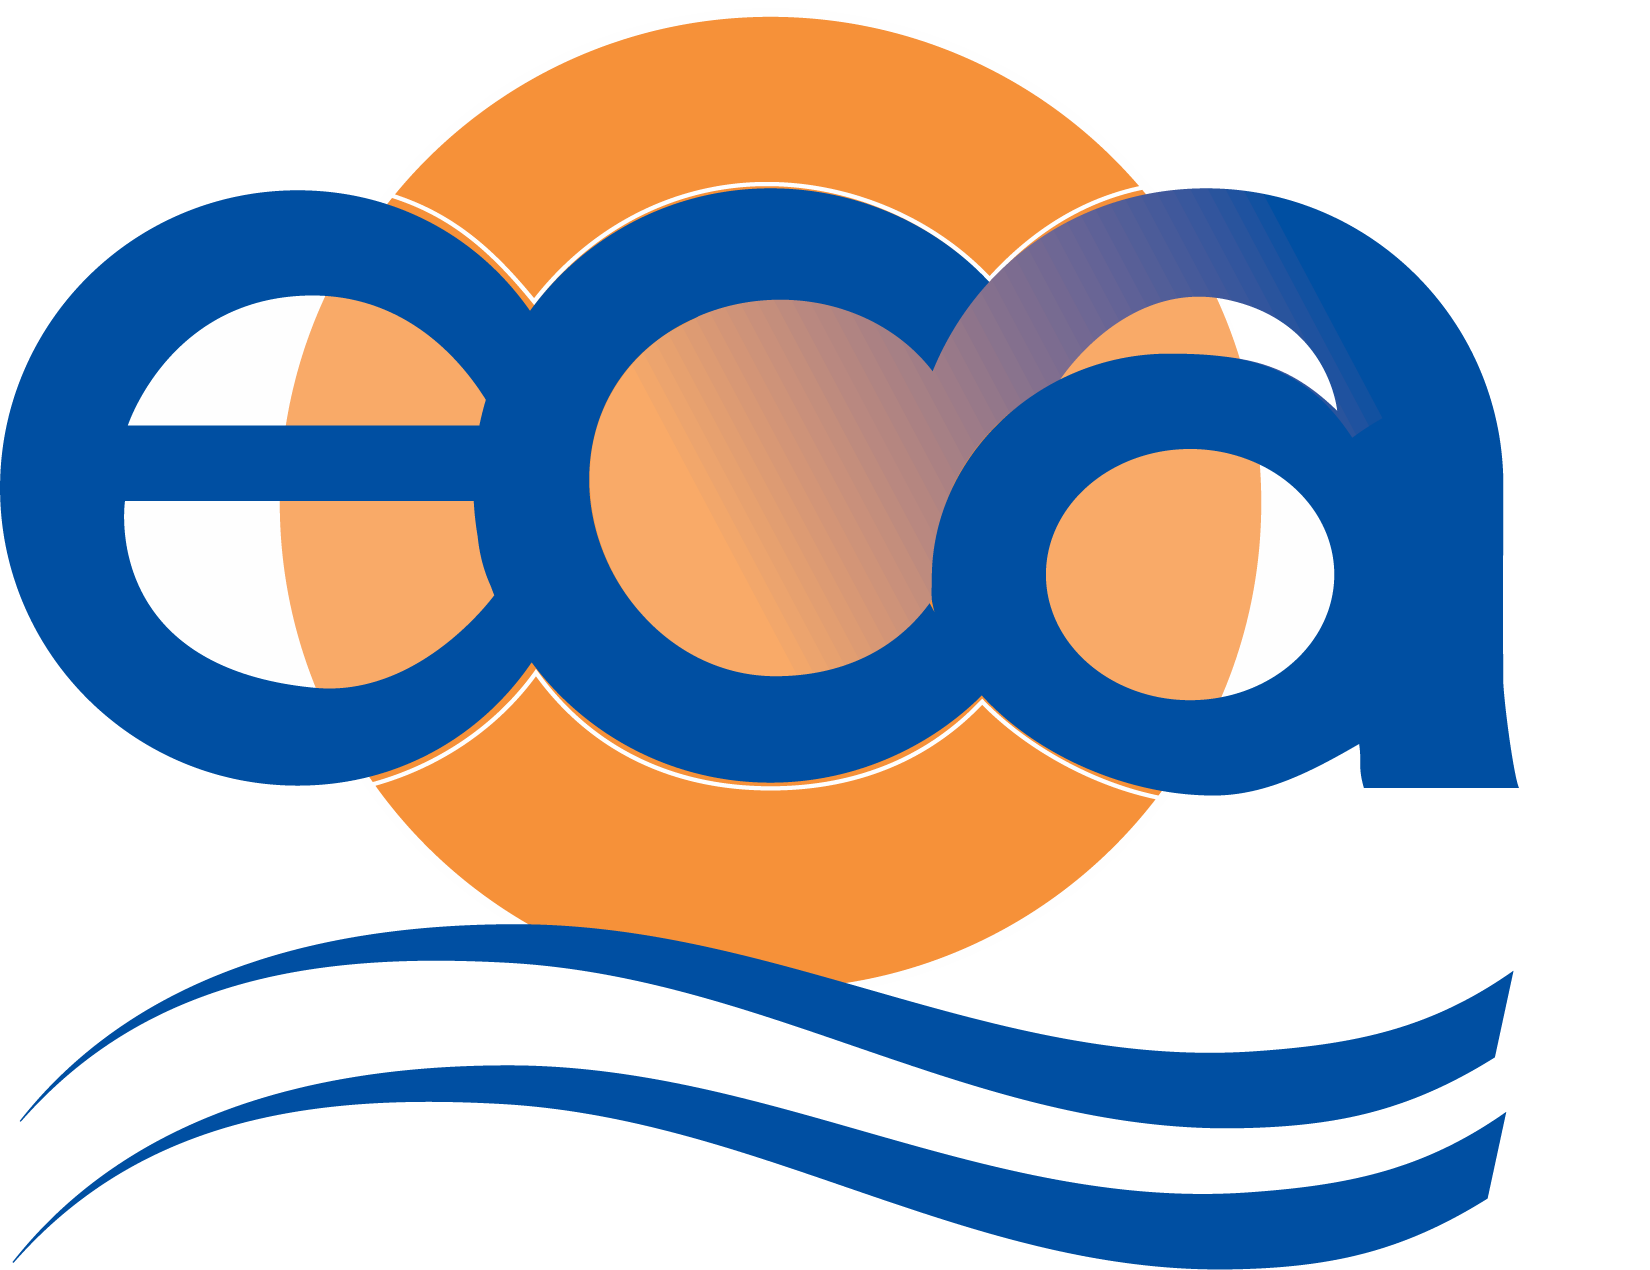 Energy Coordinating Agency Interns Logo